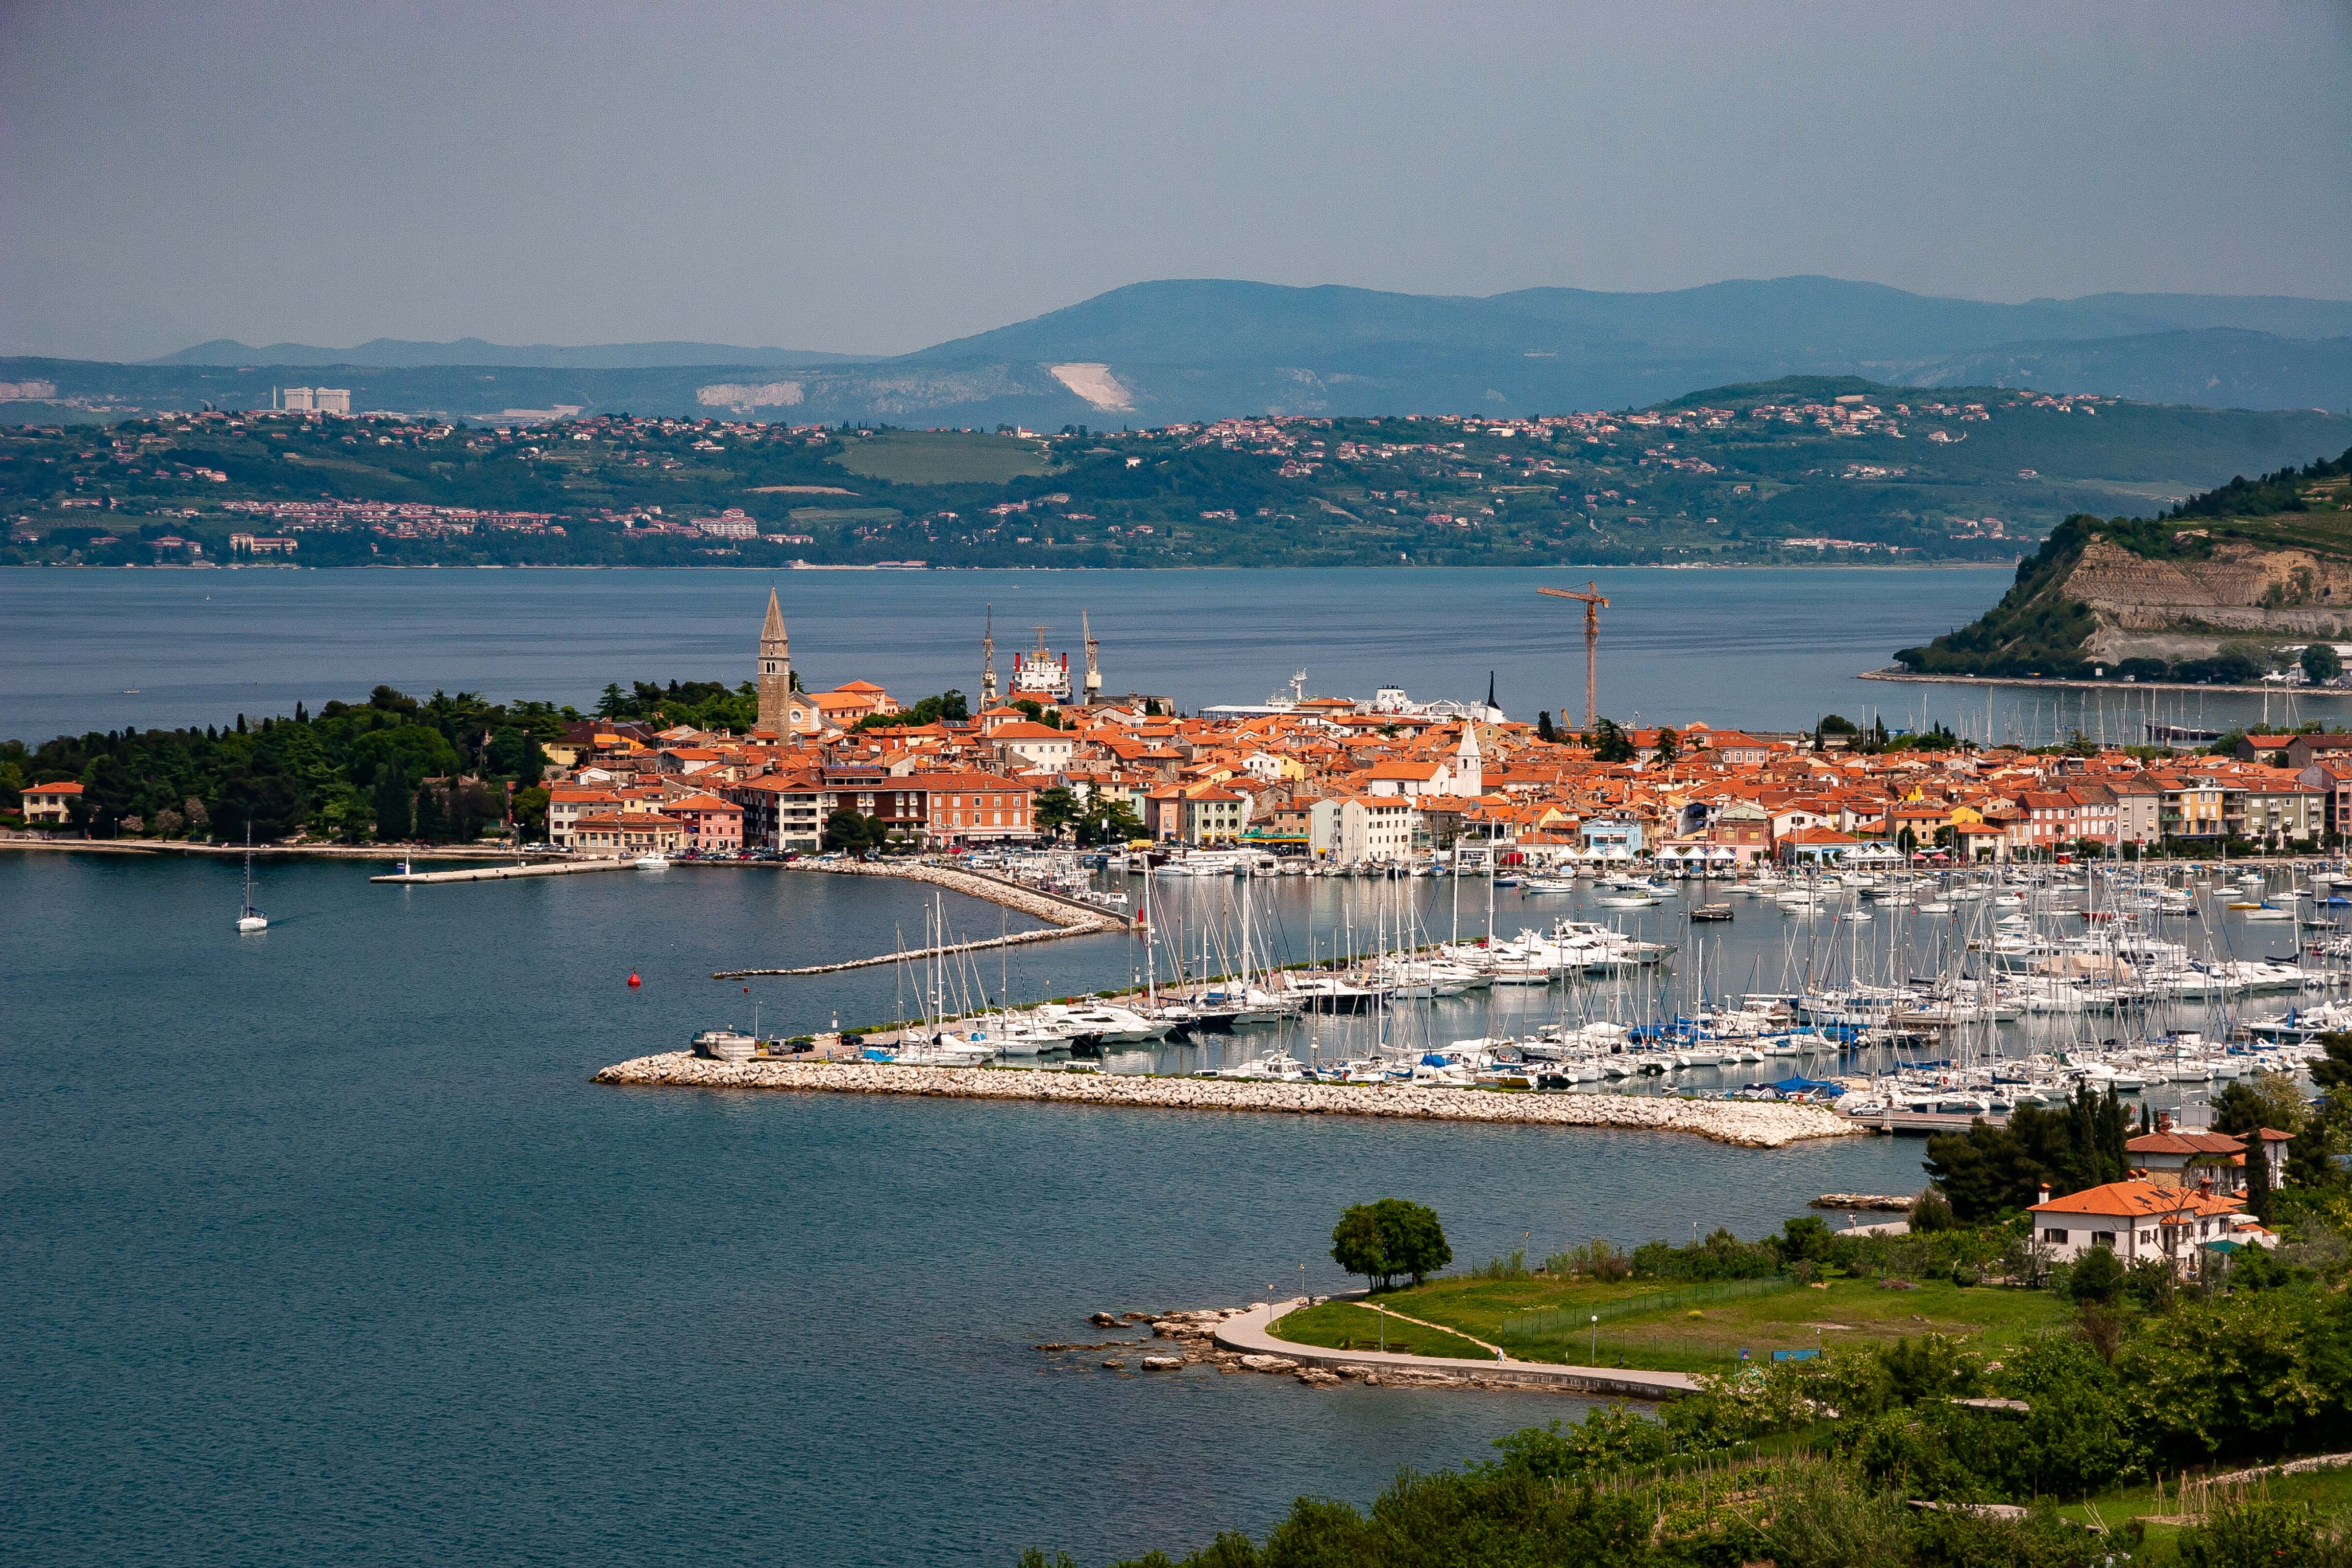 Slovenia, Izola Prov, City On Water, 2006, IMG 7048